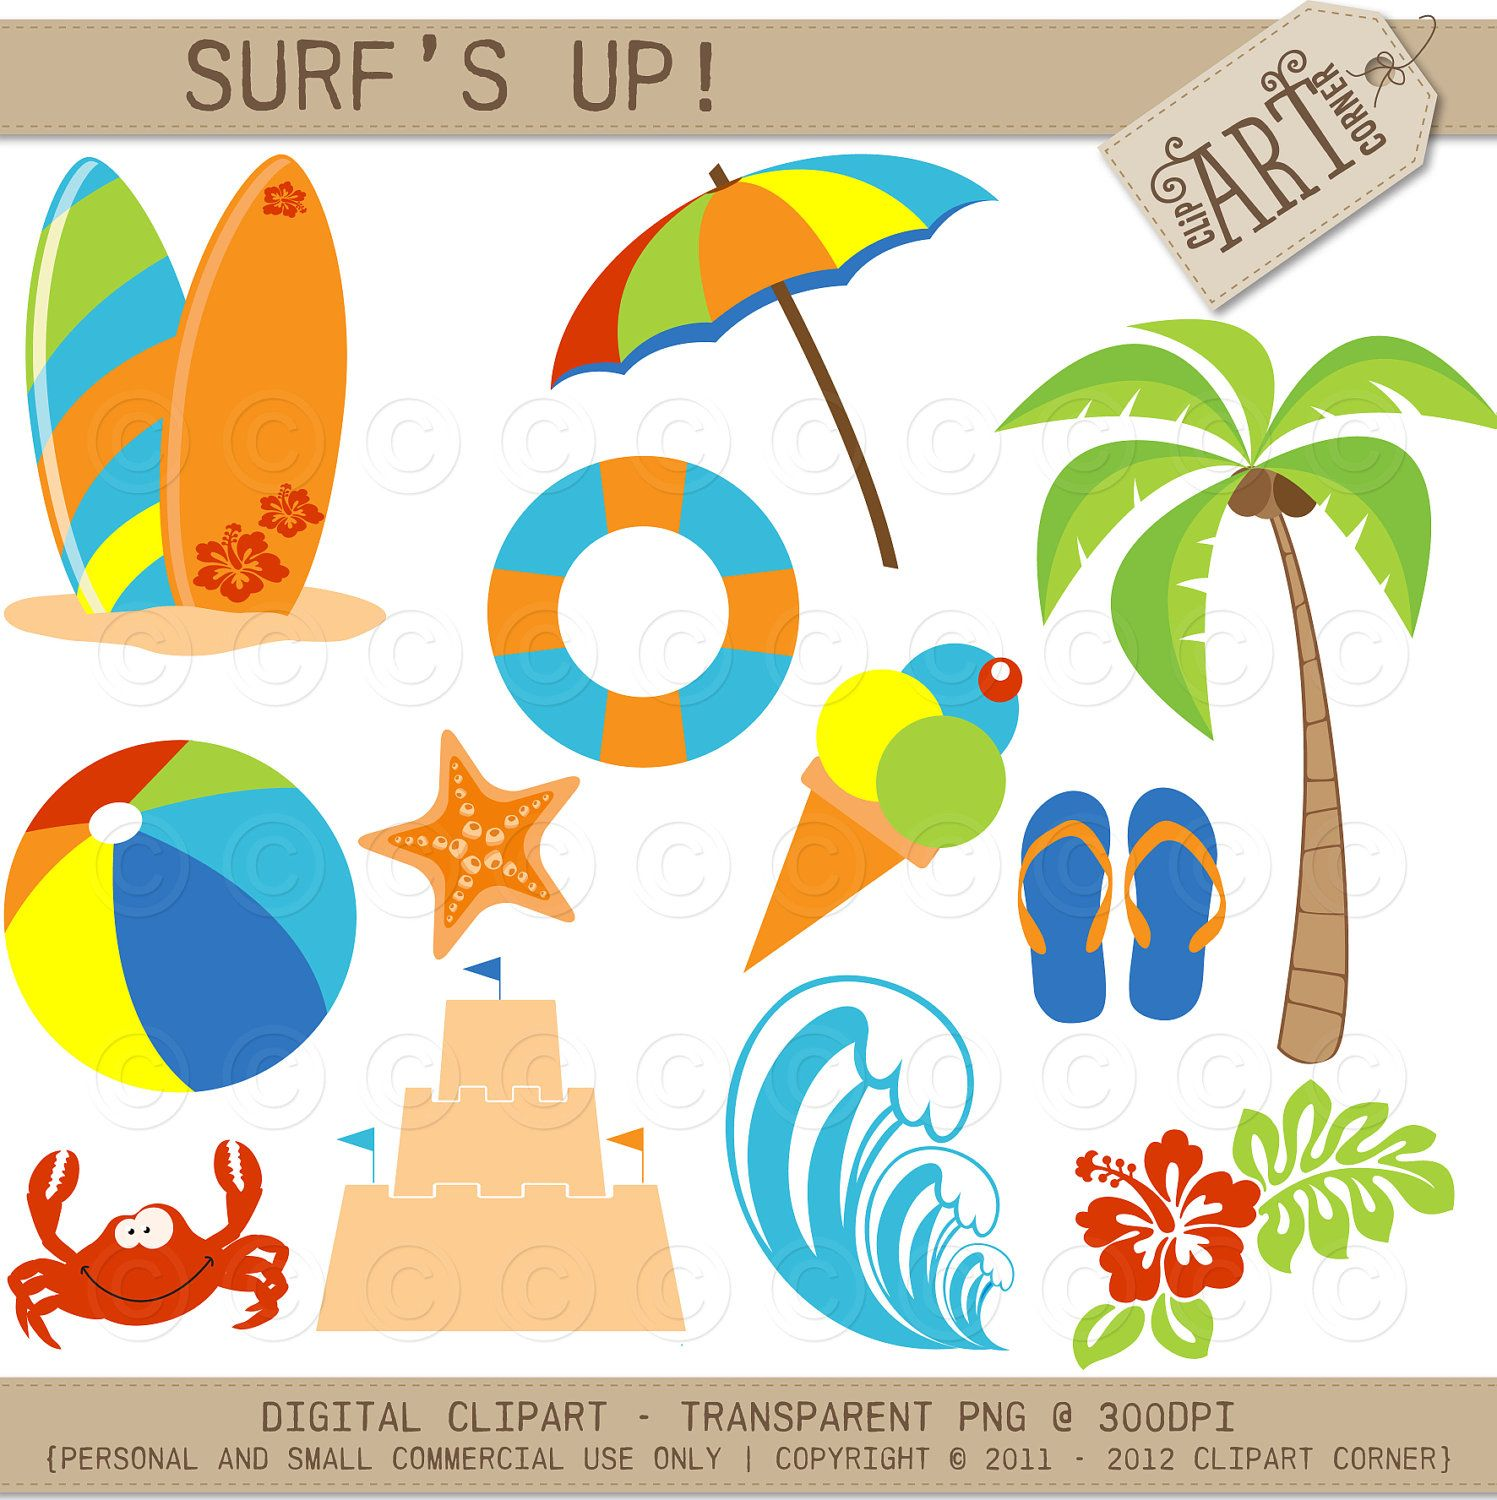 a day at the beach clipart, summer clip art, surfing, surfboards